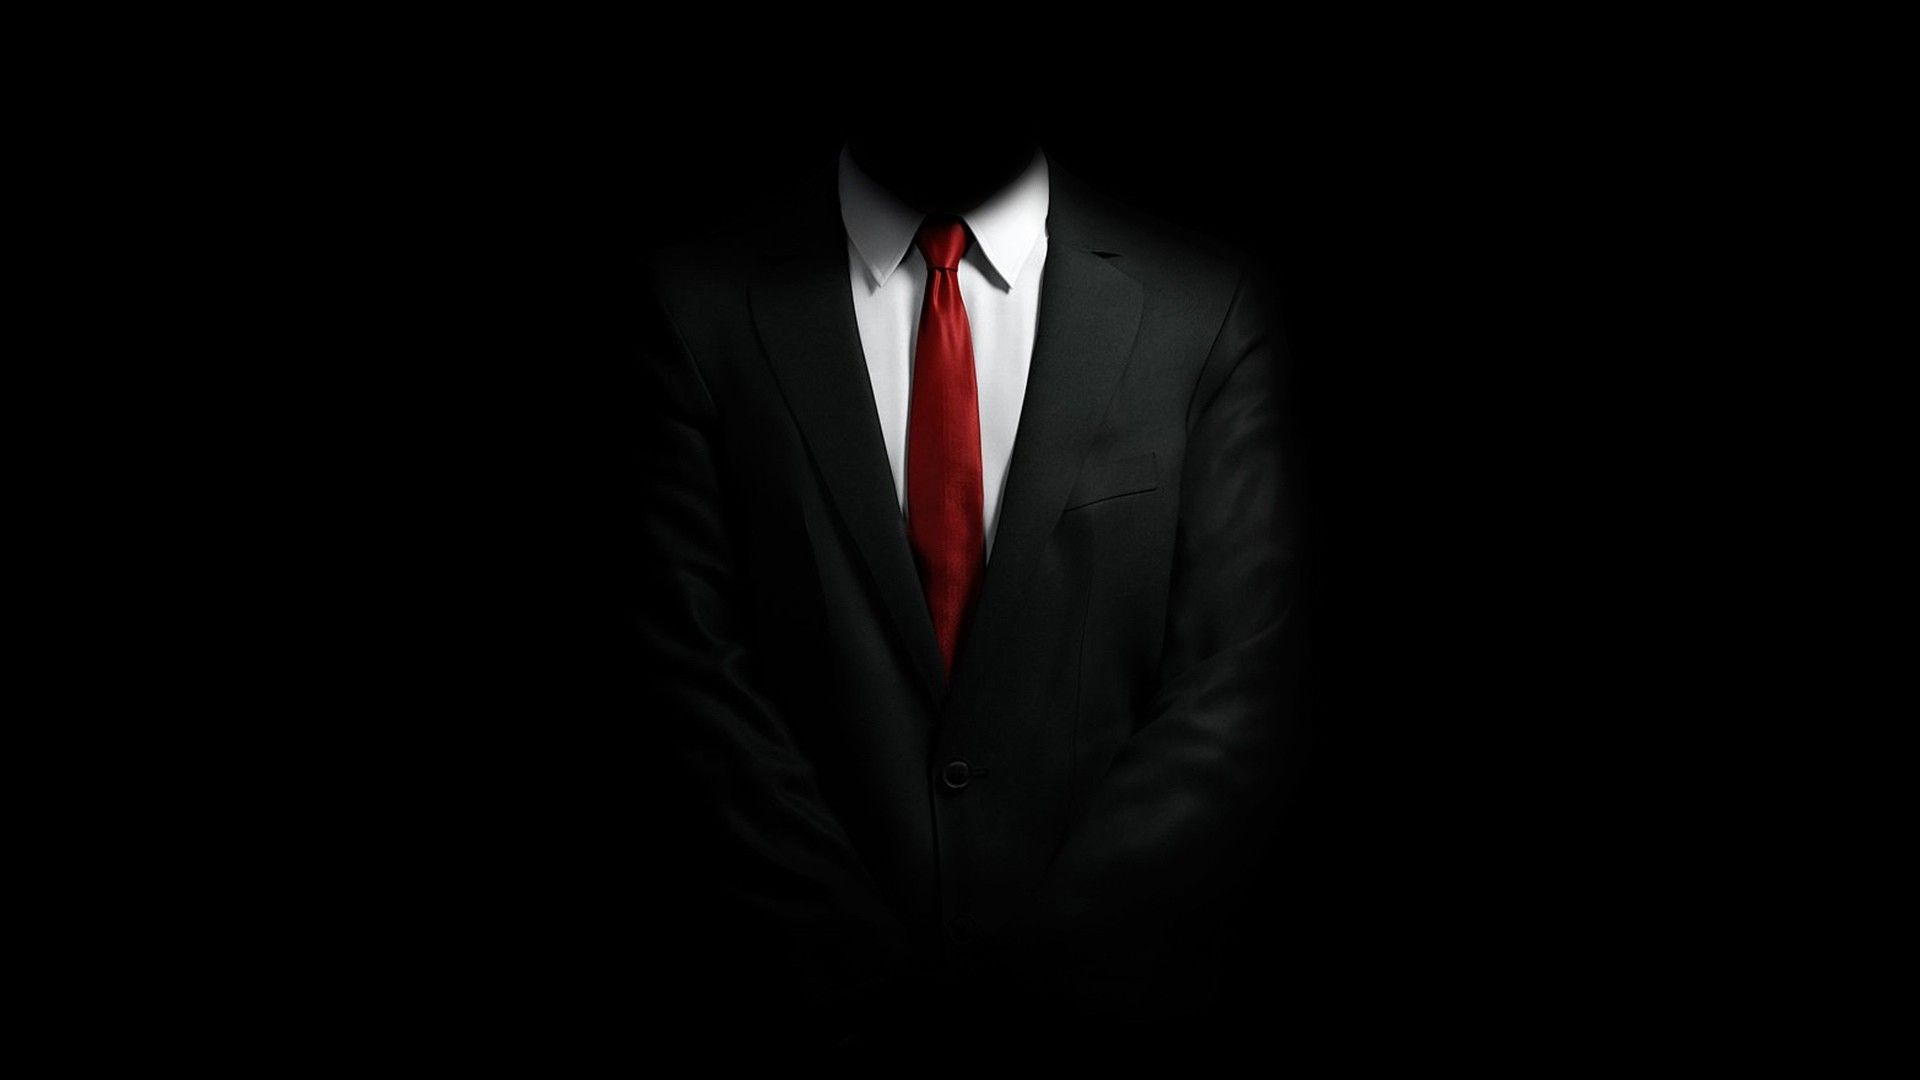 Hitman Minimalist 1920x1080 R Wallpapers Black Hd Wallpaper Android Wallpaper Black Black Wallpaper